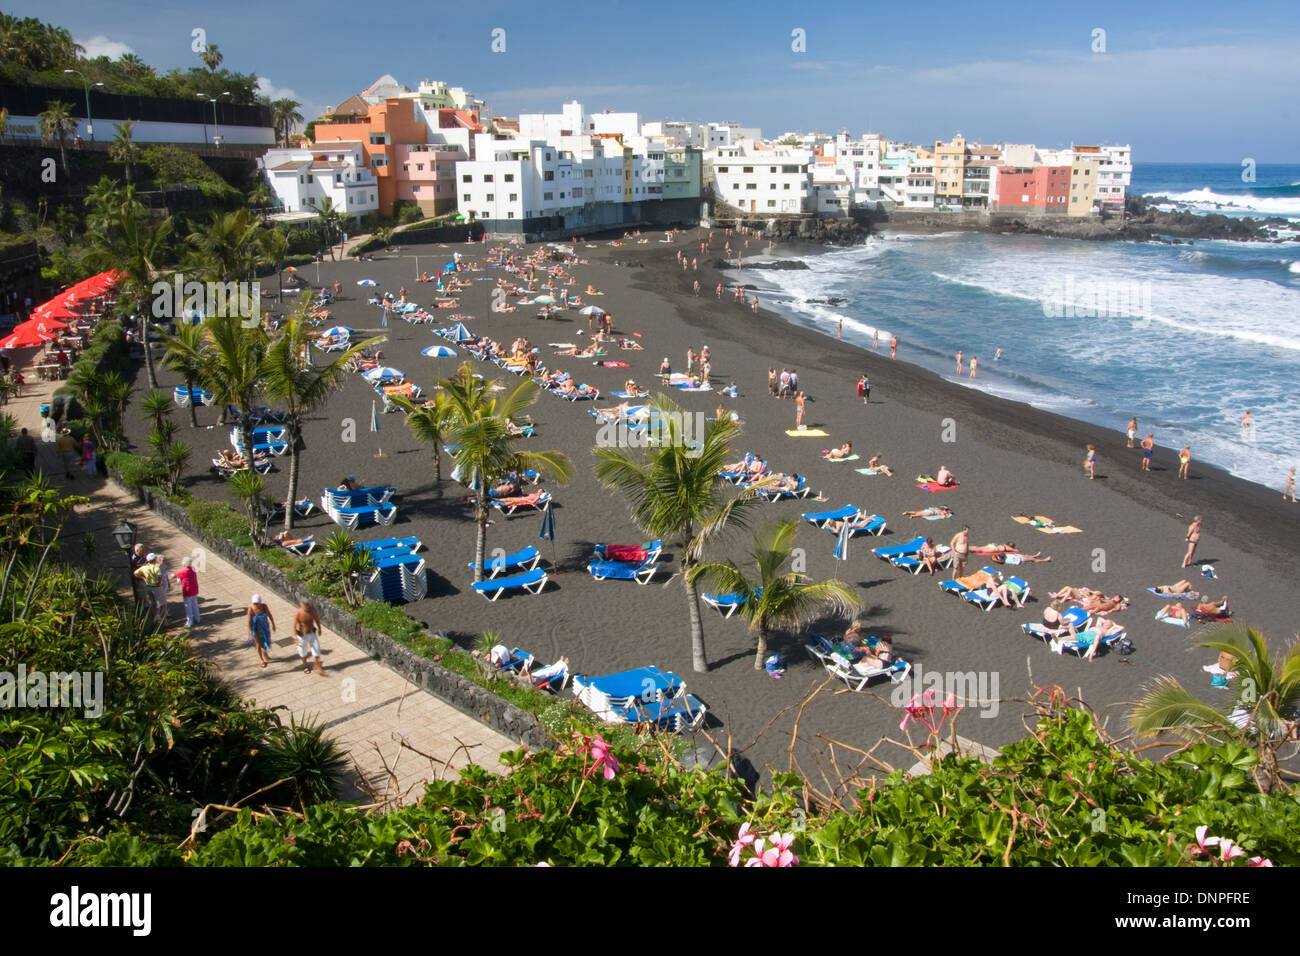 Playa del jardin puerto de la cruz northern tenerife spain stock photo royalty free image - Playa puerto de la cruz tenerife ...